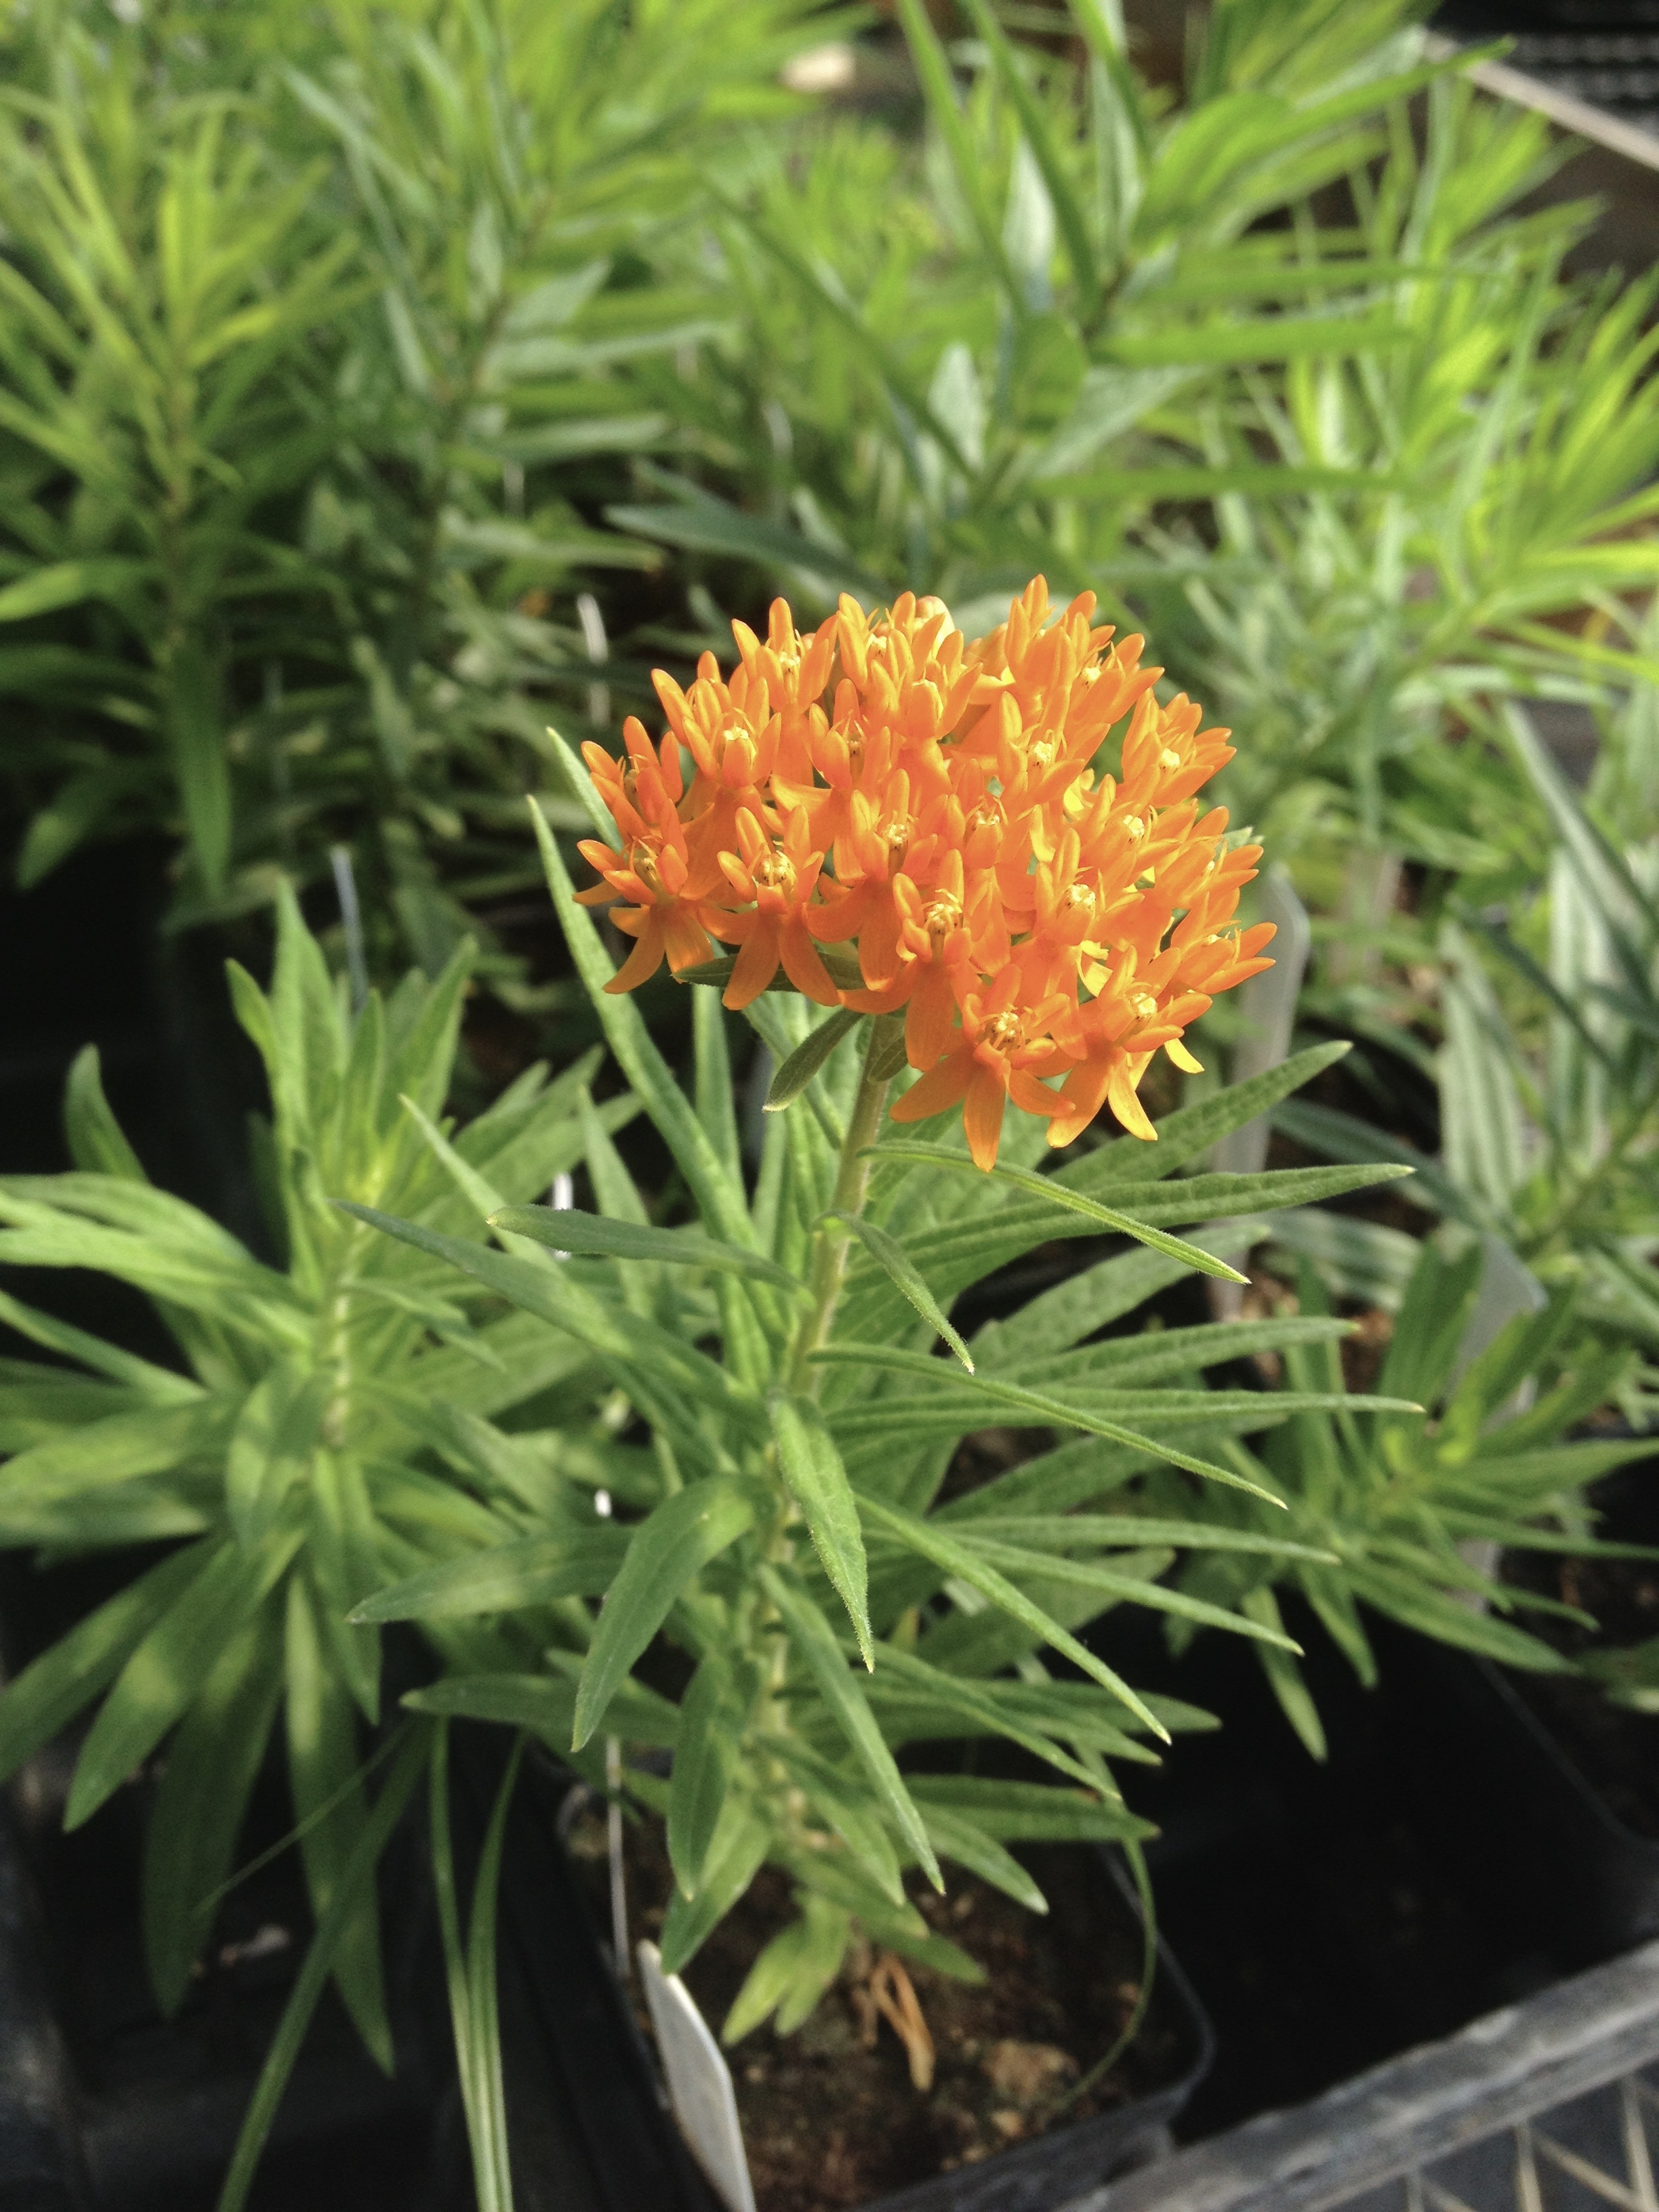 Butterfly milkweed (Asclepias tuberosa) blooming in the greenhouse